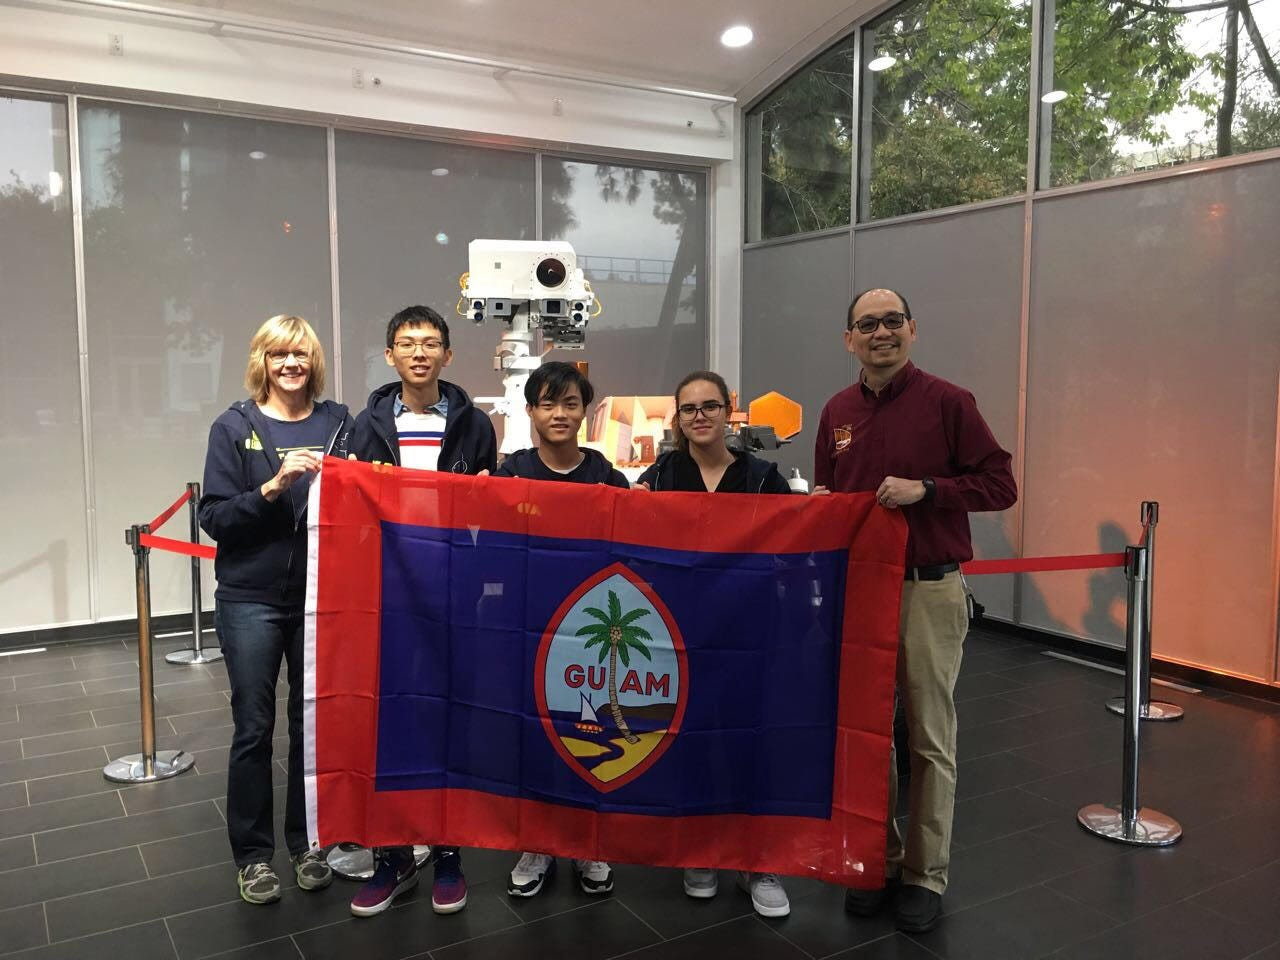 John F. Kennedy High School robotics and pre-engineering students were invited to participate in the 20th annual Jet Propulsion Laboratory (JPL) Invention Challenge Upright Pipe Contest finals sponsored by the JPL near Pasadena, CA. on Dec. 14, 2018. John F. Kennedy High School placed fifth out of 15 in the JPL employee category.